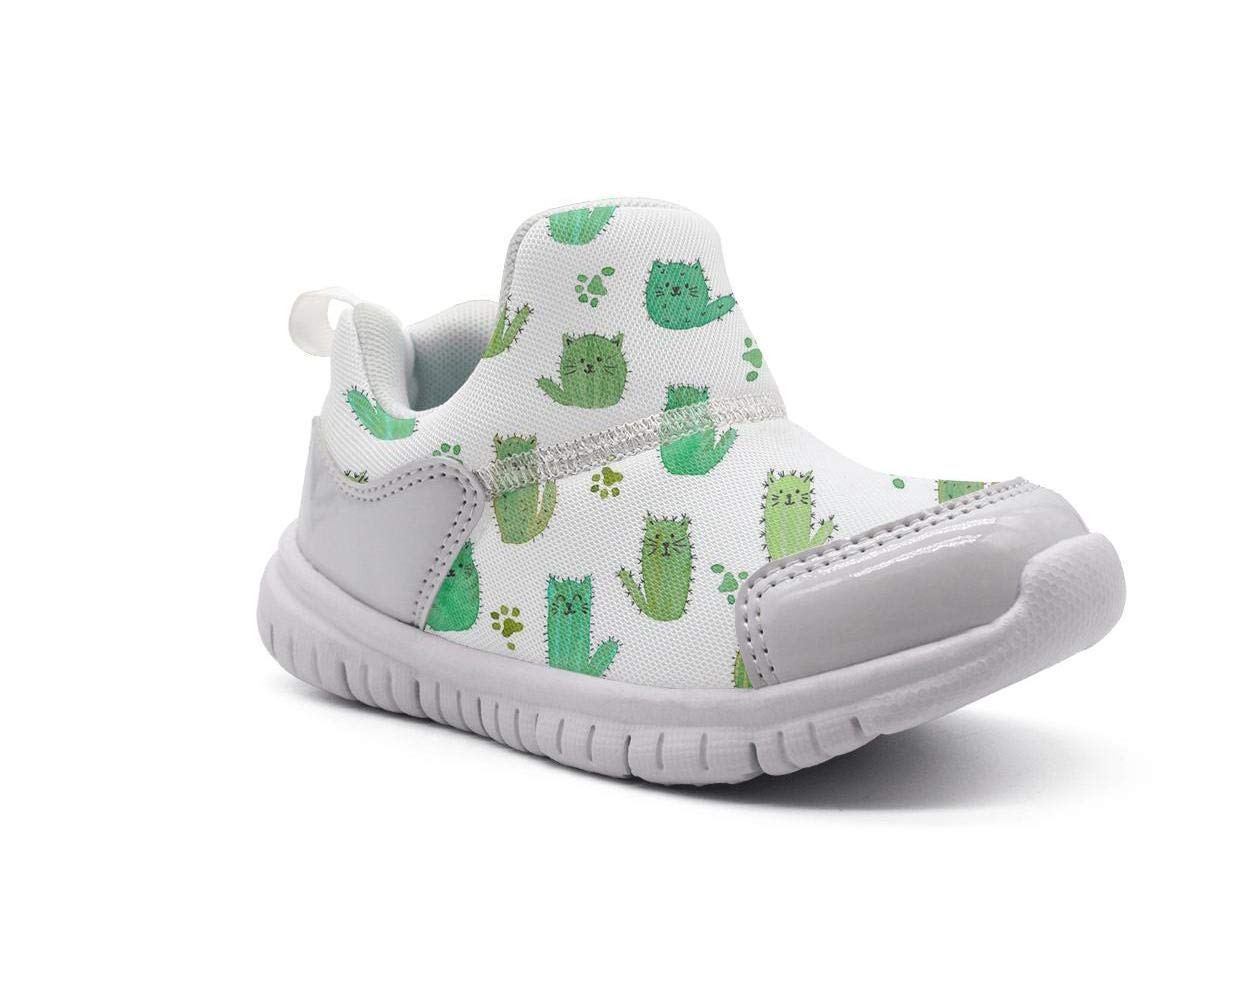 ONEYUAN Children Cute cat Cactus Figure Kid Casual Lightweight Sport Shoes Sneakers Walking Athletic Shoes